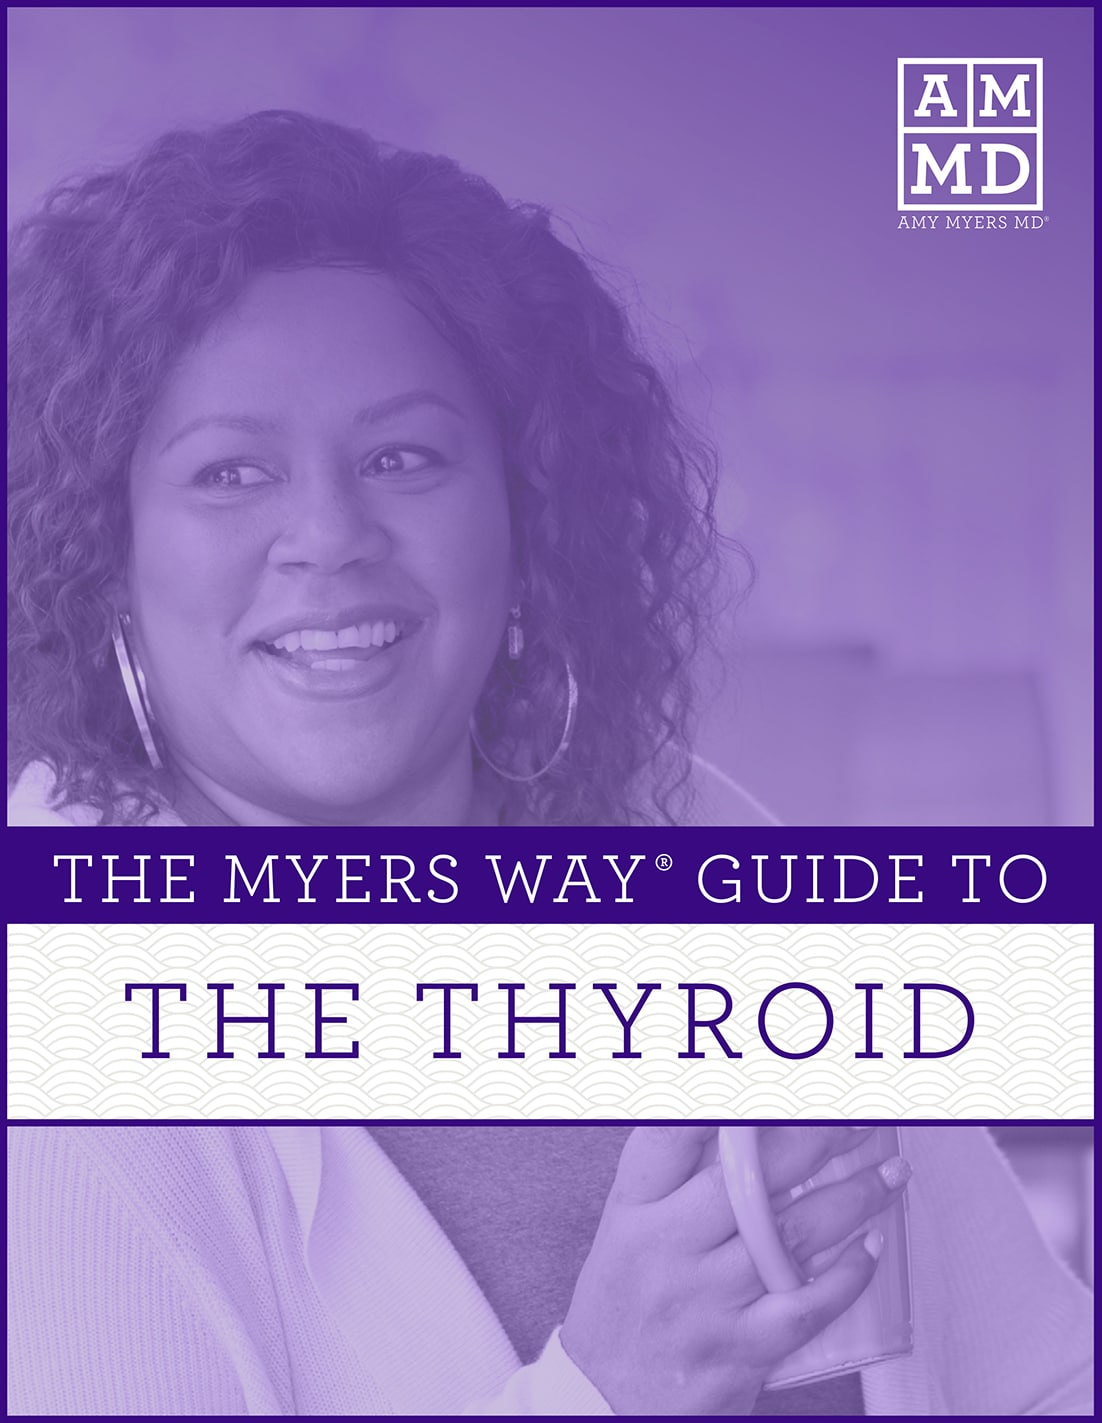 The Myers Way Guide to Thyroid